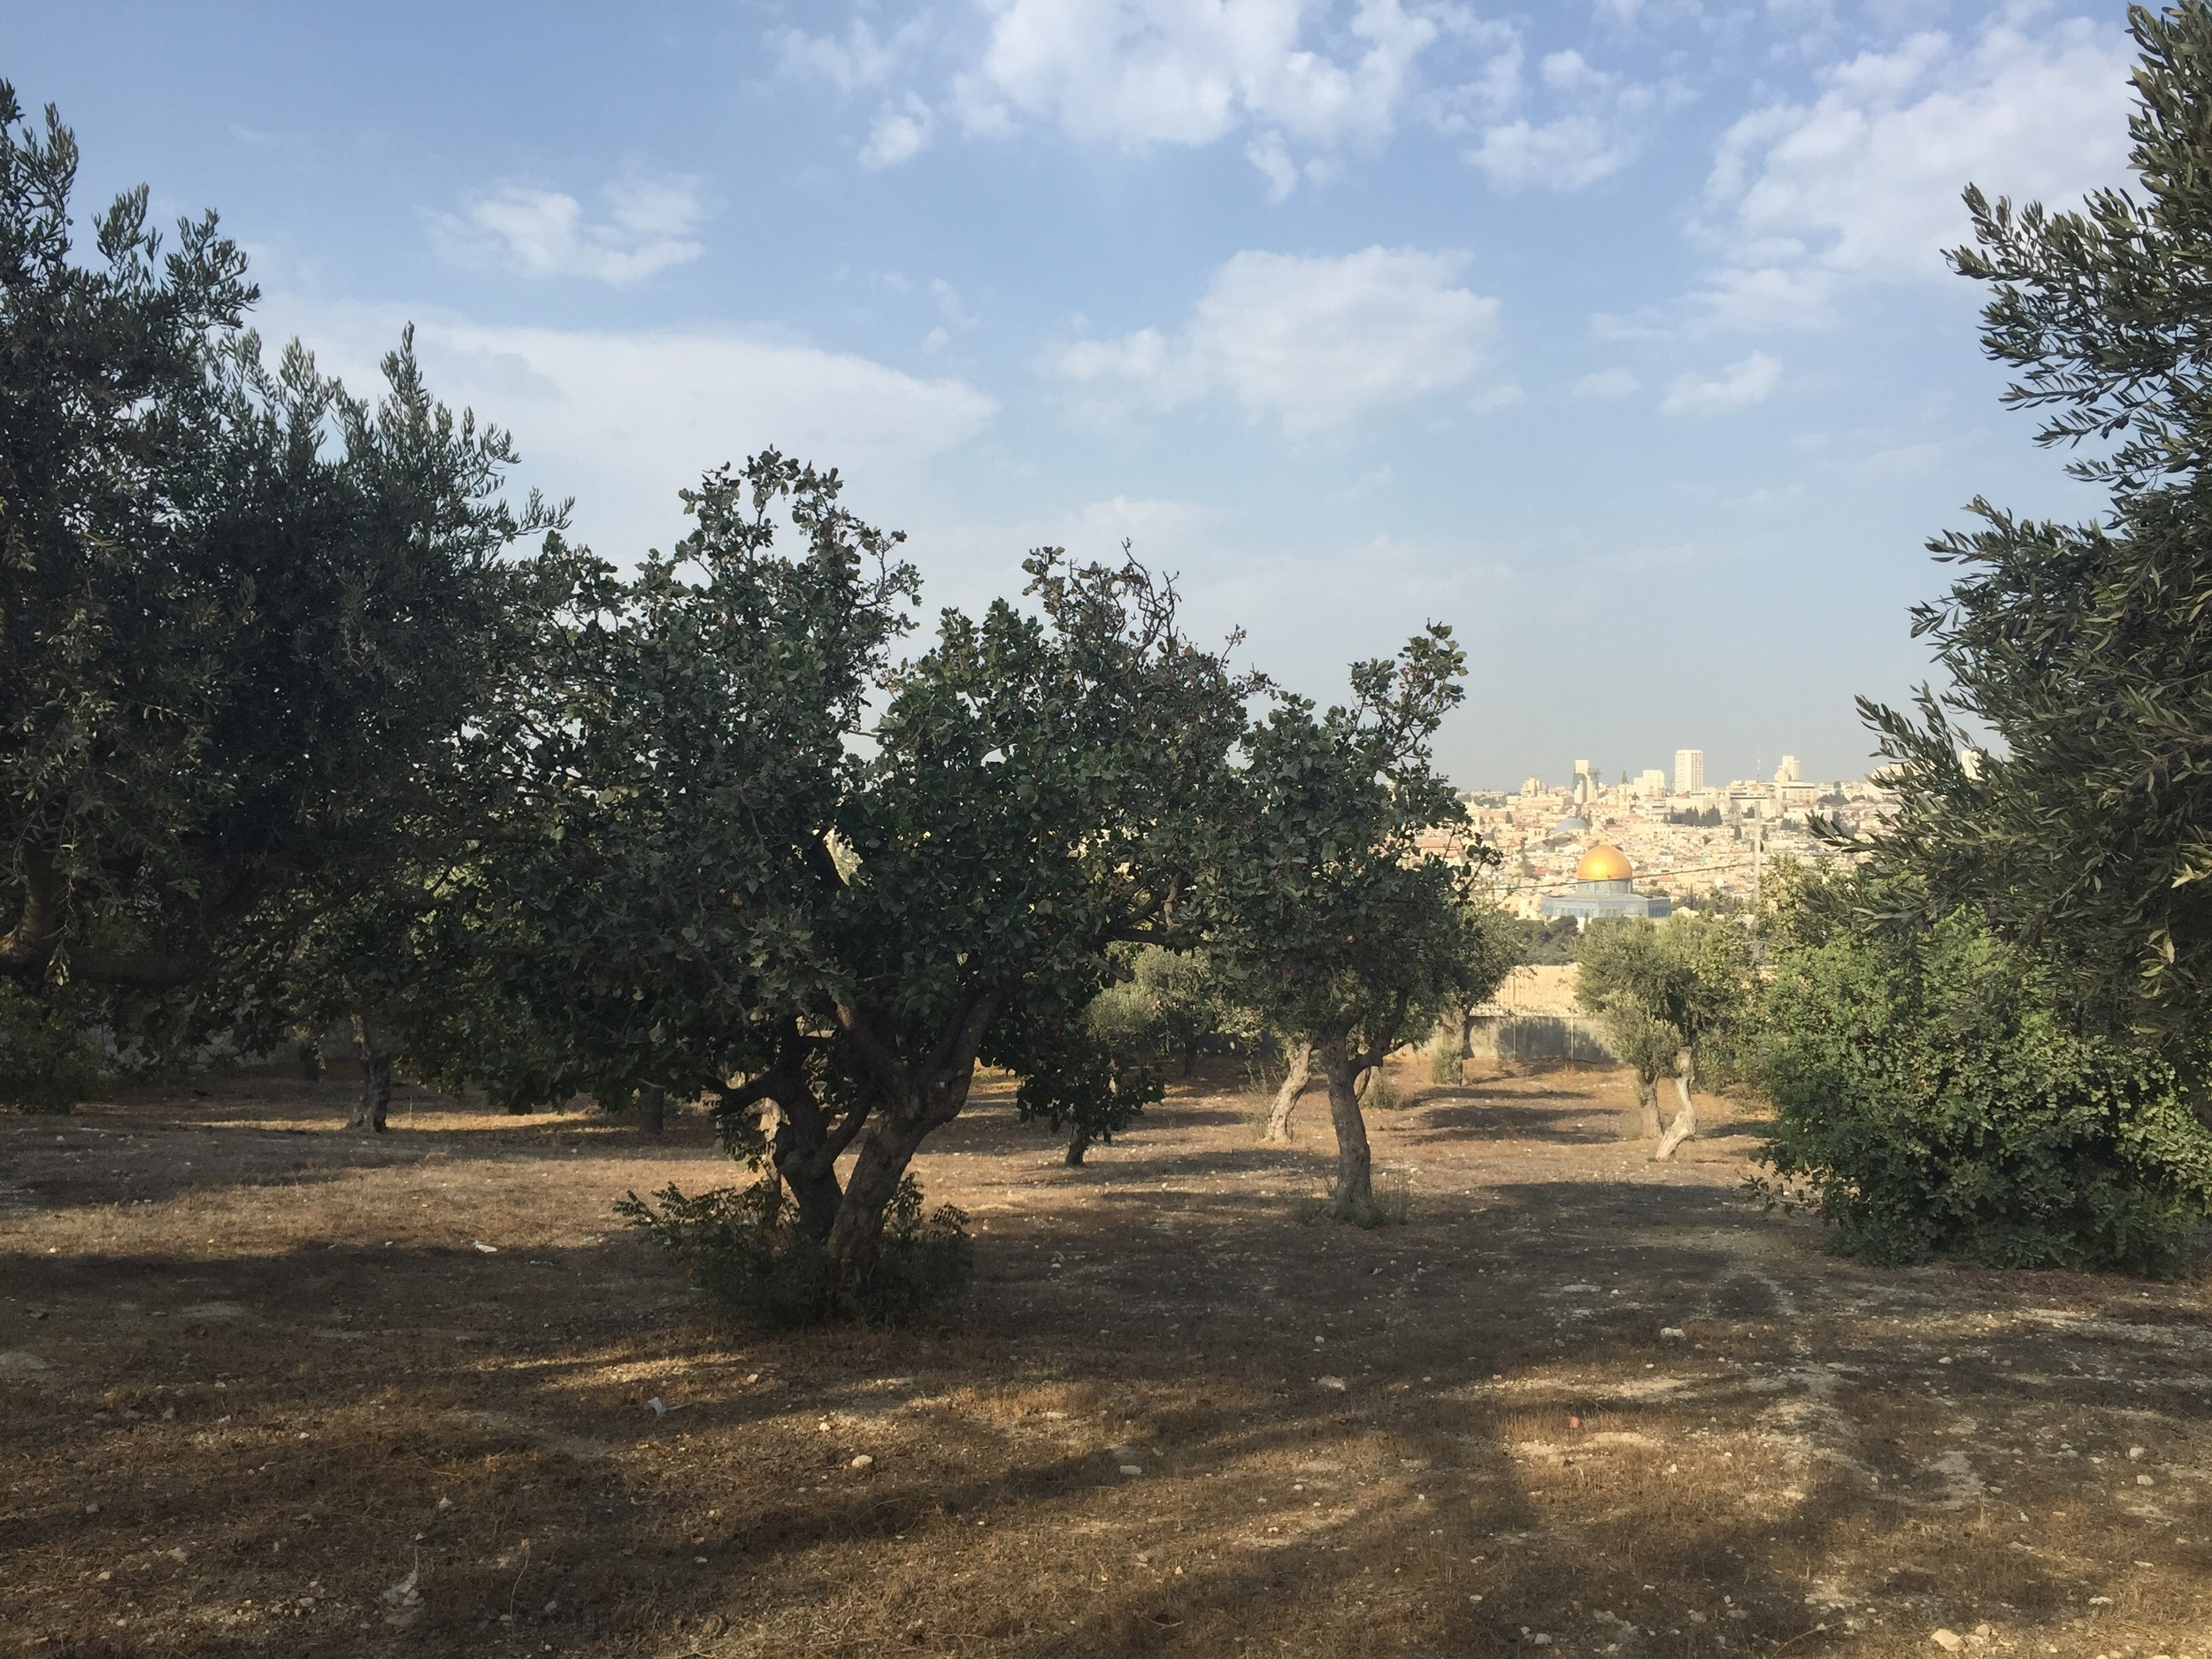 Looking down at the temple mount through a grove of Olive trees in a garden at the Pater Noster Church on the Mount of Olives.  This building memorialies Jesus teaching his disciples how to pray.